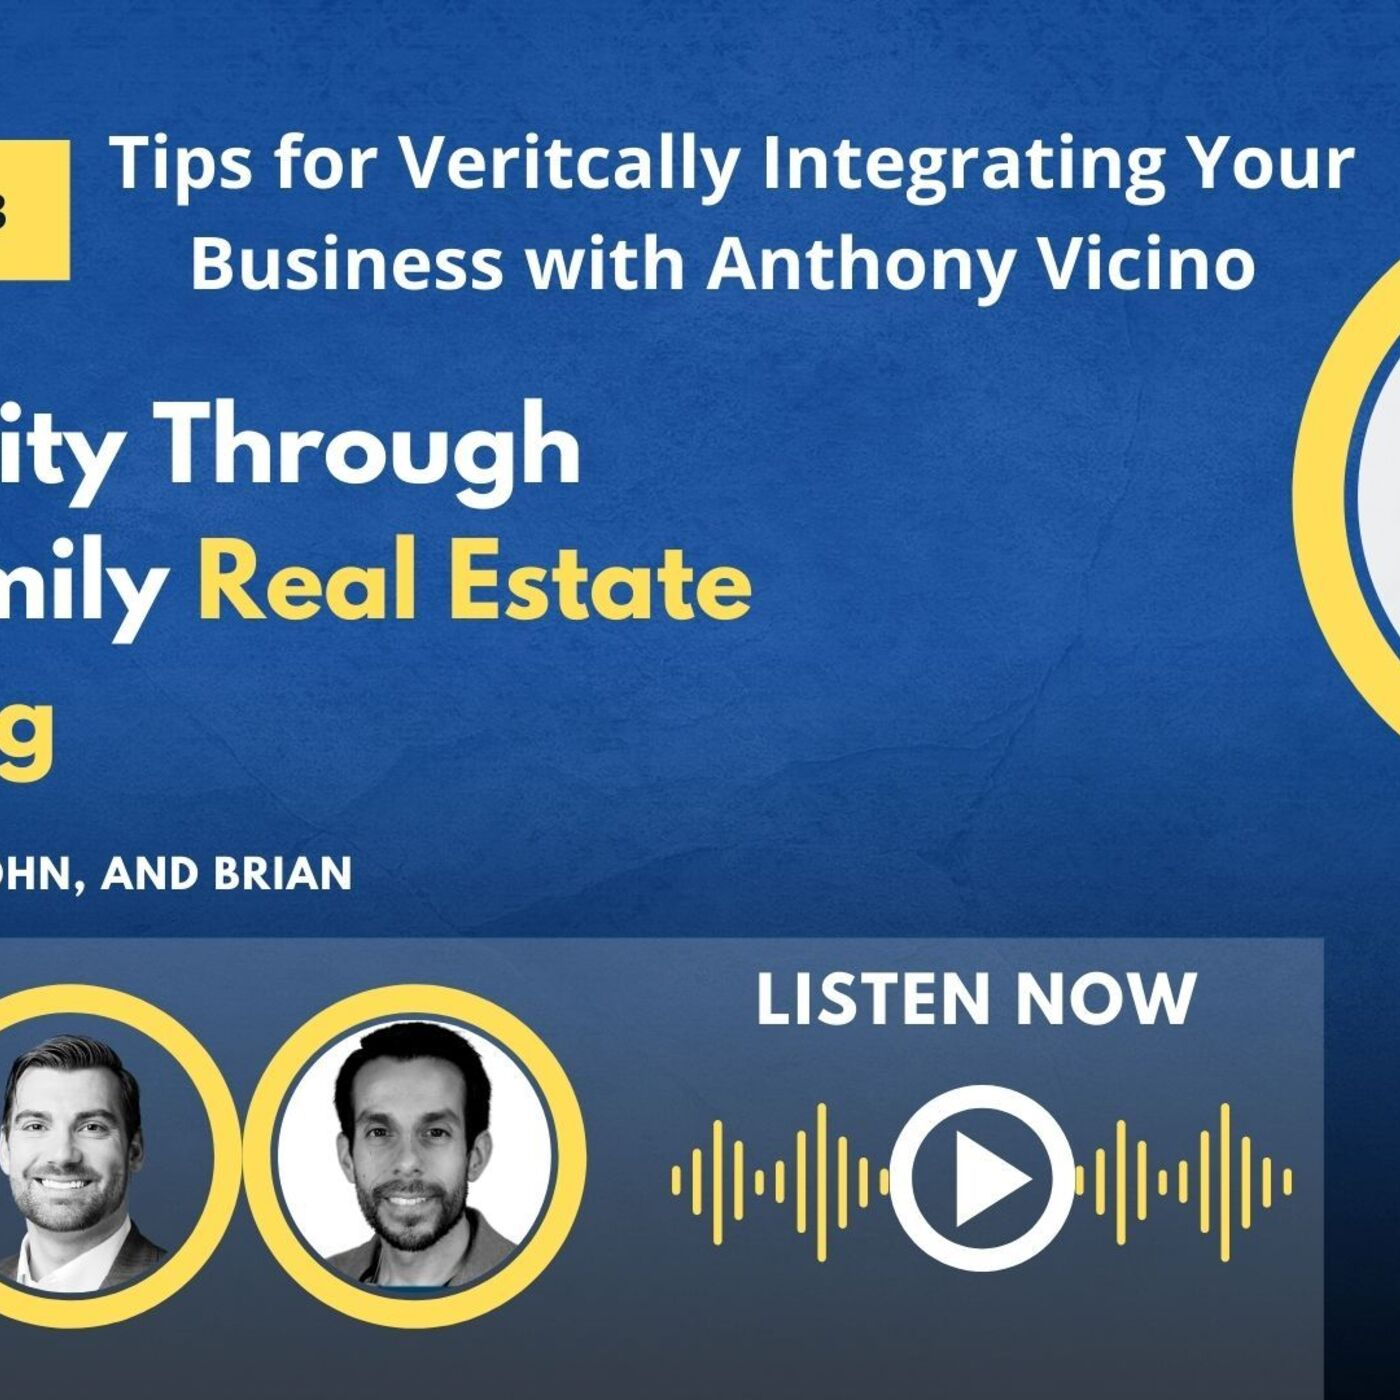 Tips for Vertically Integrating Your Business with Anthony Vicino